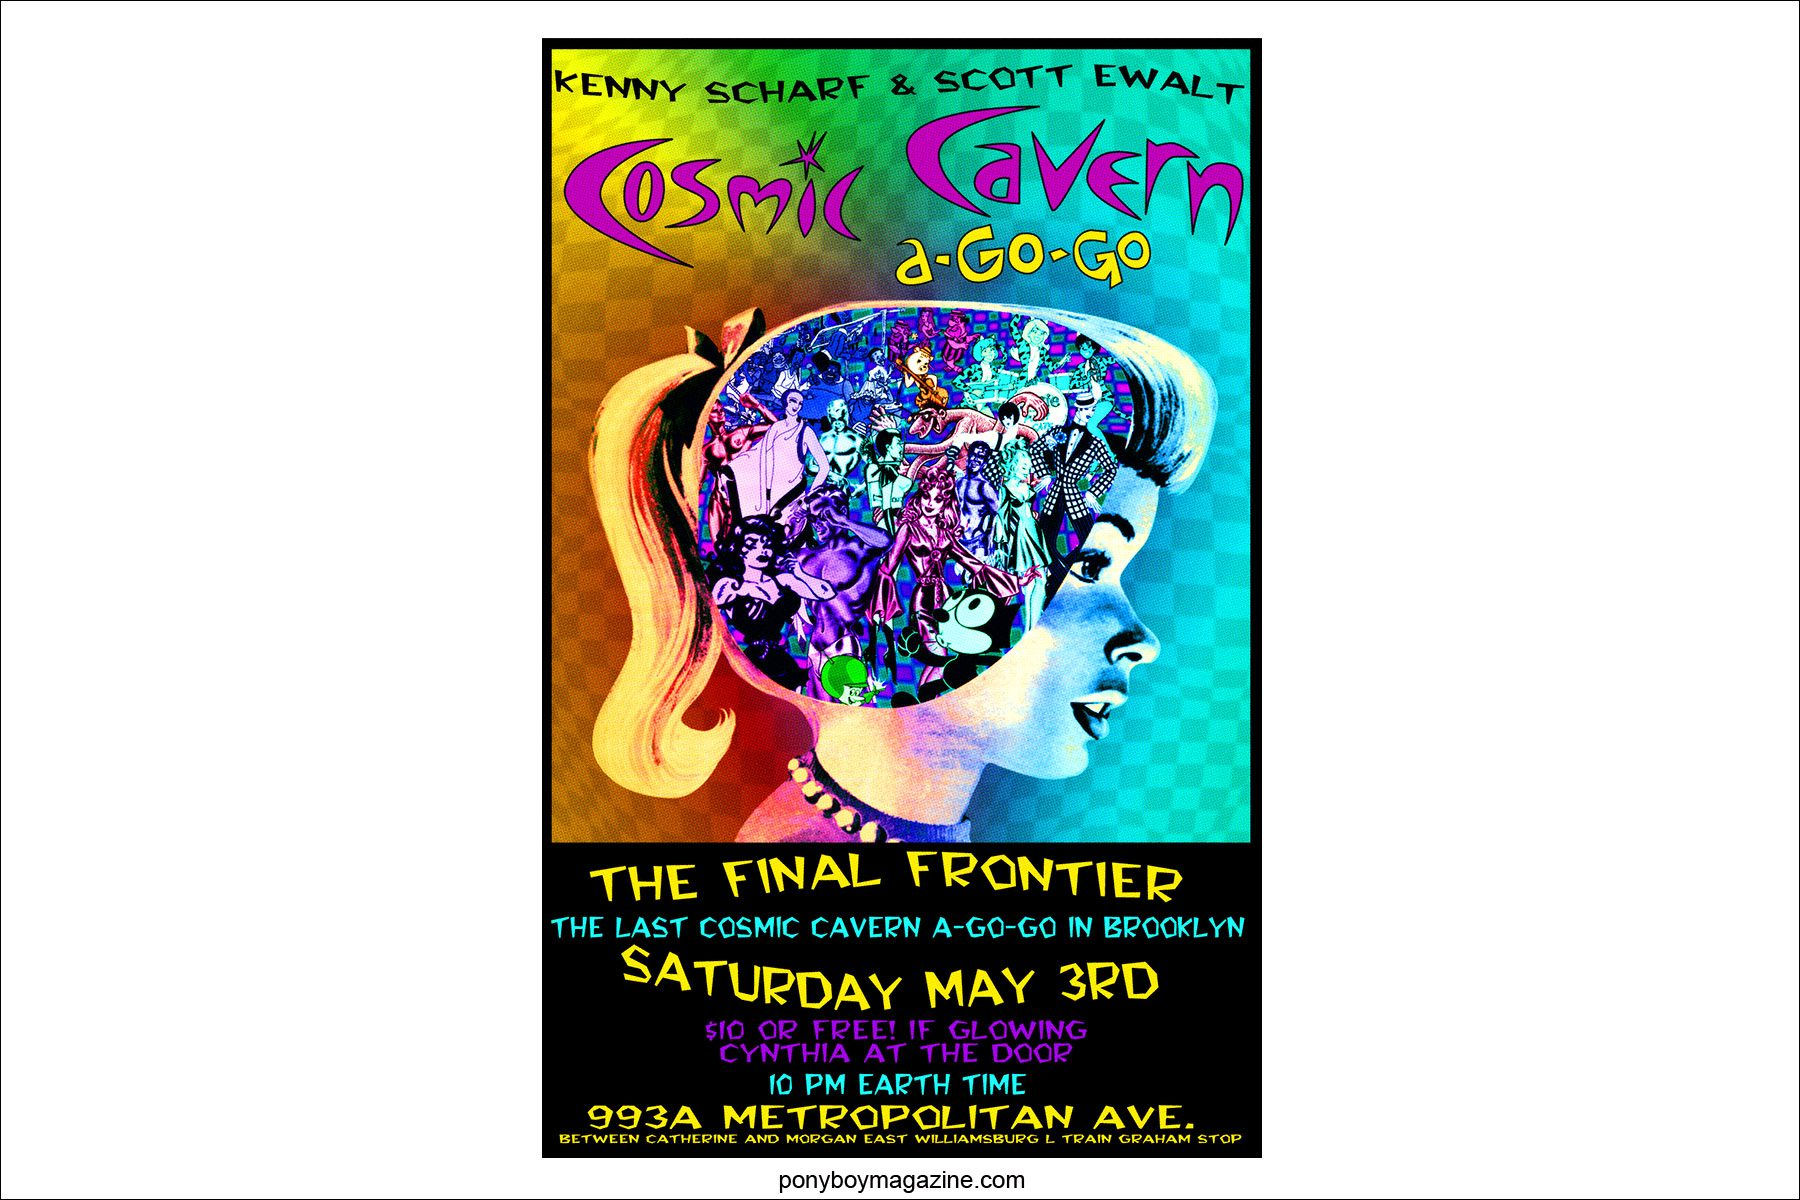 Cosmic Cavern flyer for Kenny Scharf and Scott Ewalt event, Ponyboy Magazine.